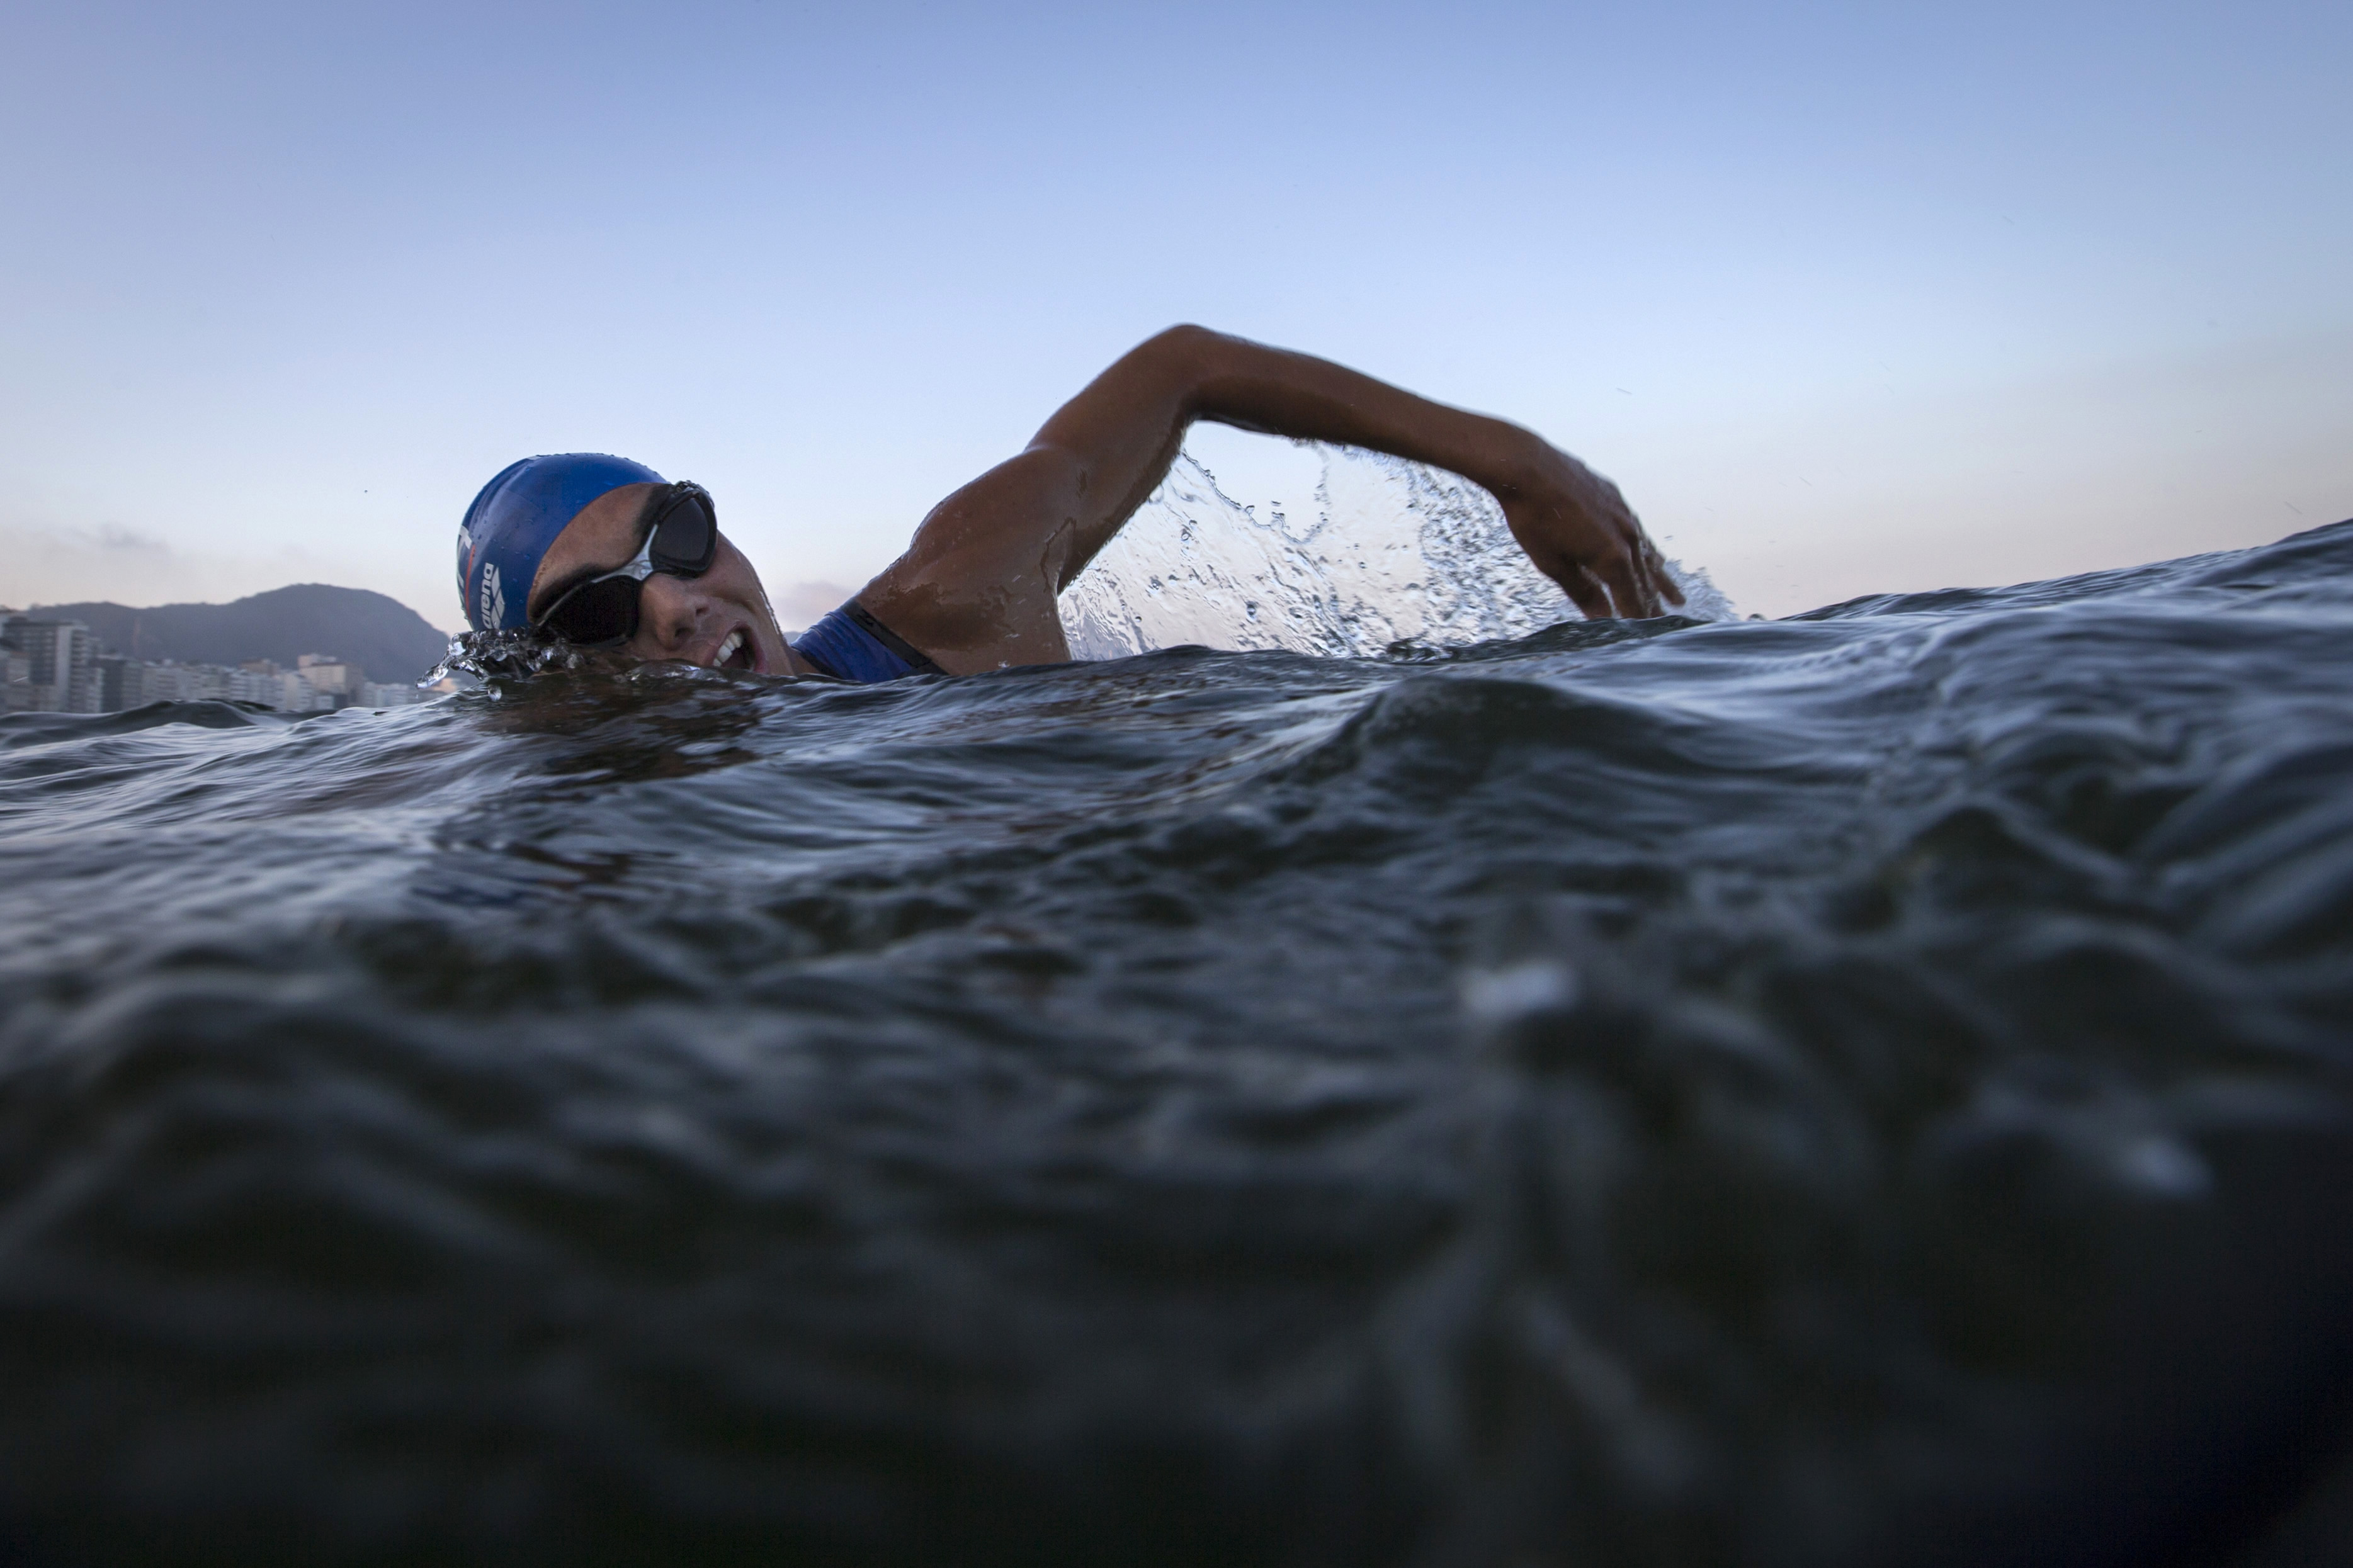 """A triathlete swims in the waters of Copacabana Beach during training in Rio de Janeiro, Brazil, Friday, July 31, 2015. Triathletes swam in the waters off Copacabana despite published warnings that water in the area was """"unfit"""" for swimming. Athletes said"""